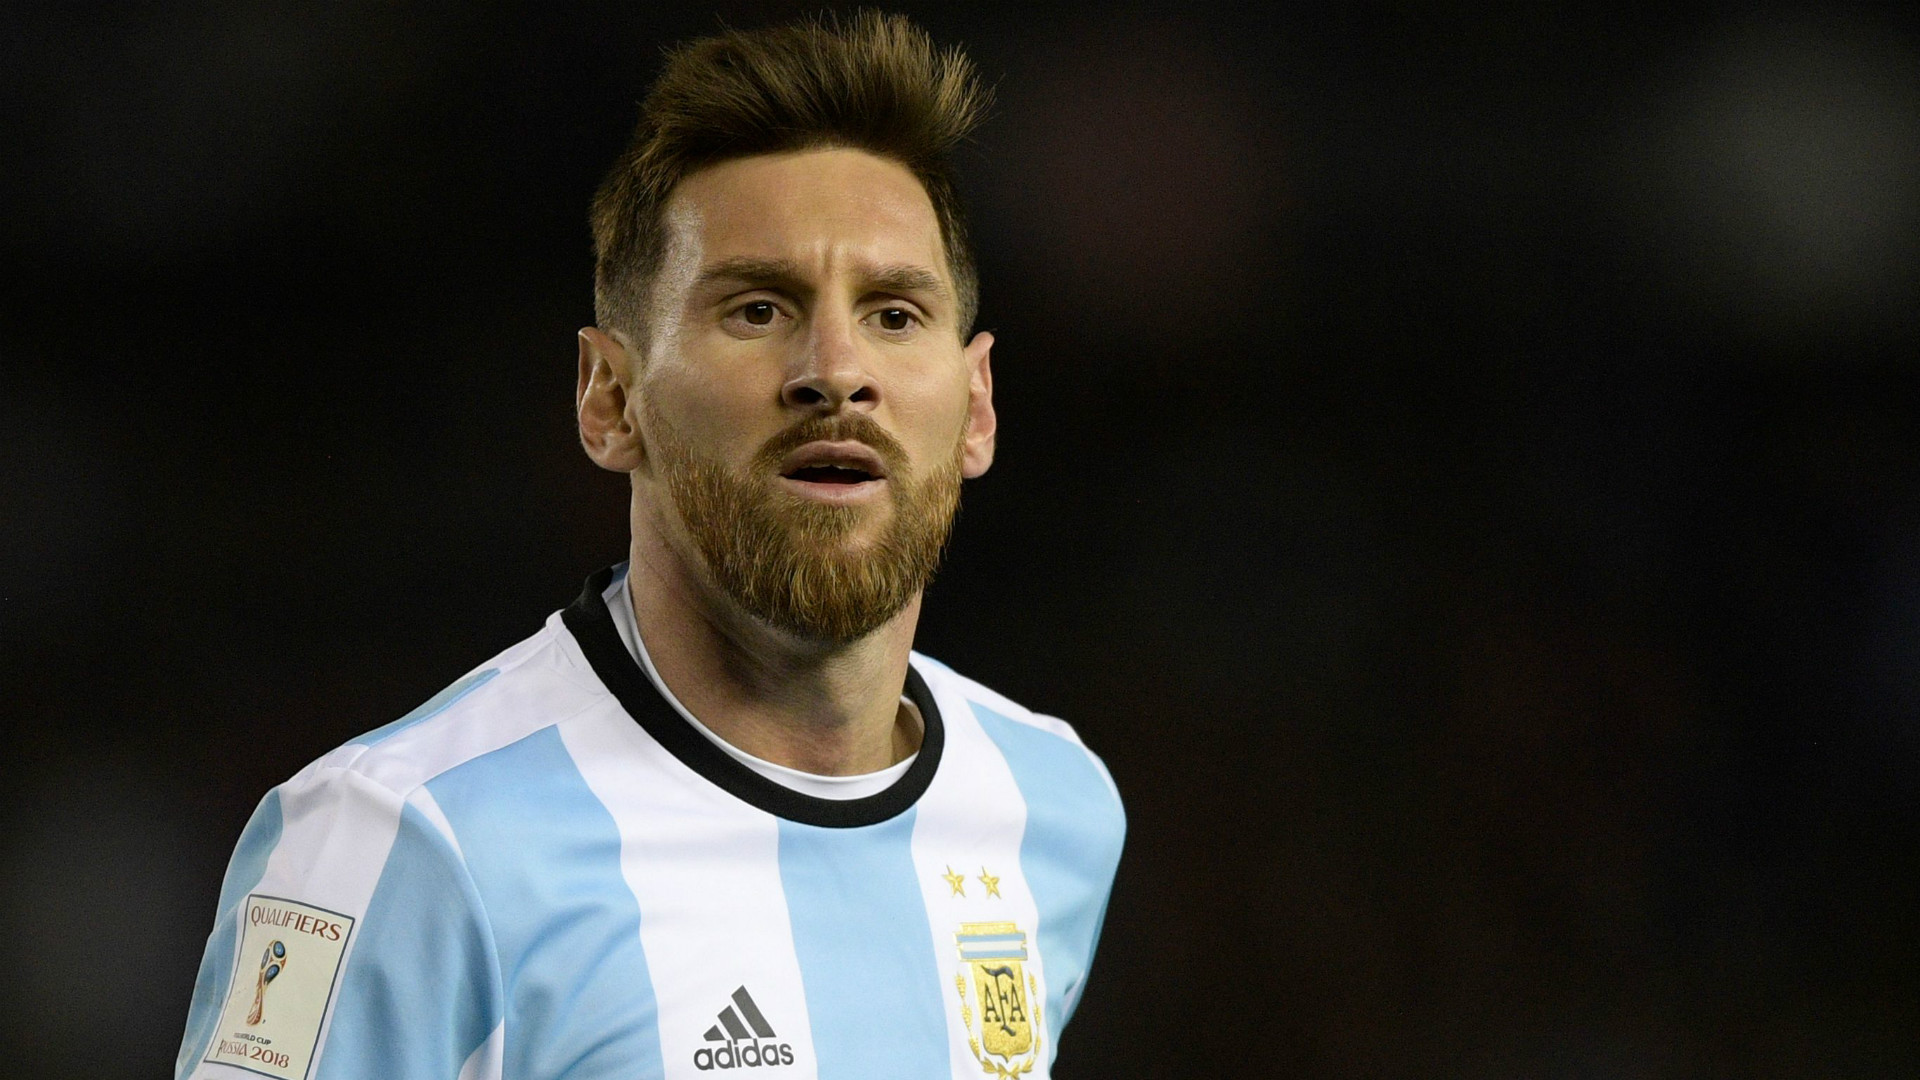 A World Cup would not be the same without Argentina